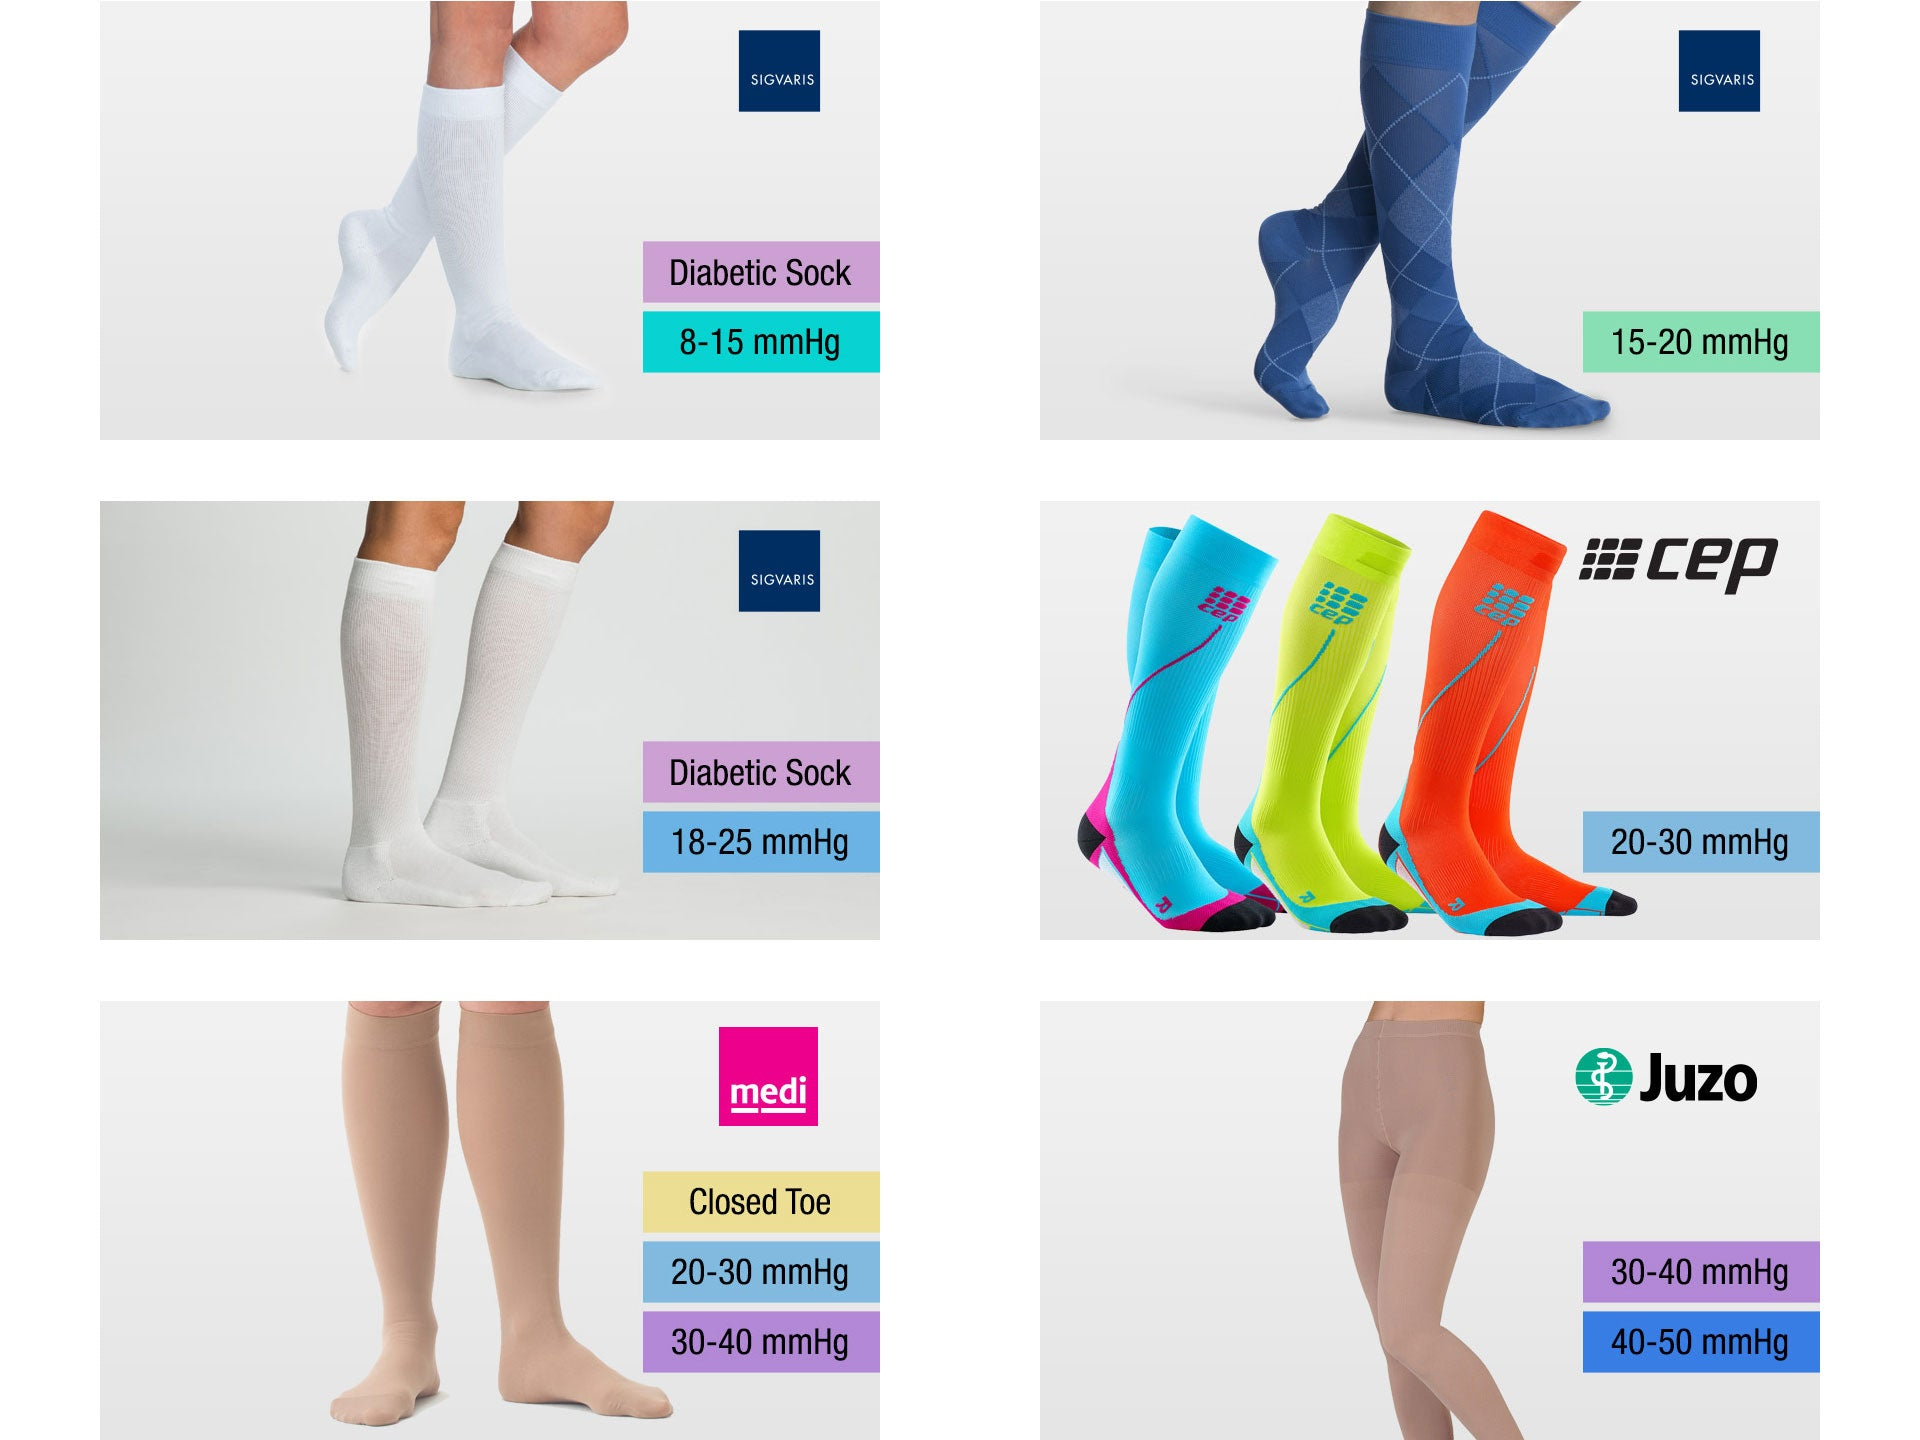 Different levels of compression for compression socks and stockings